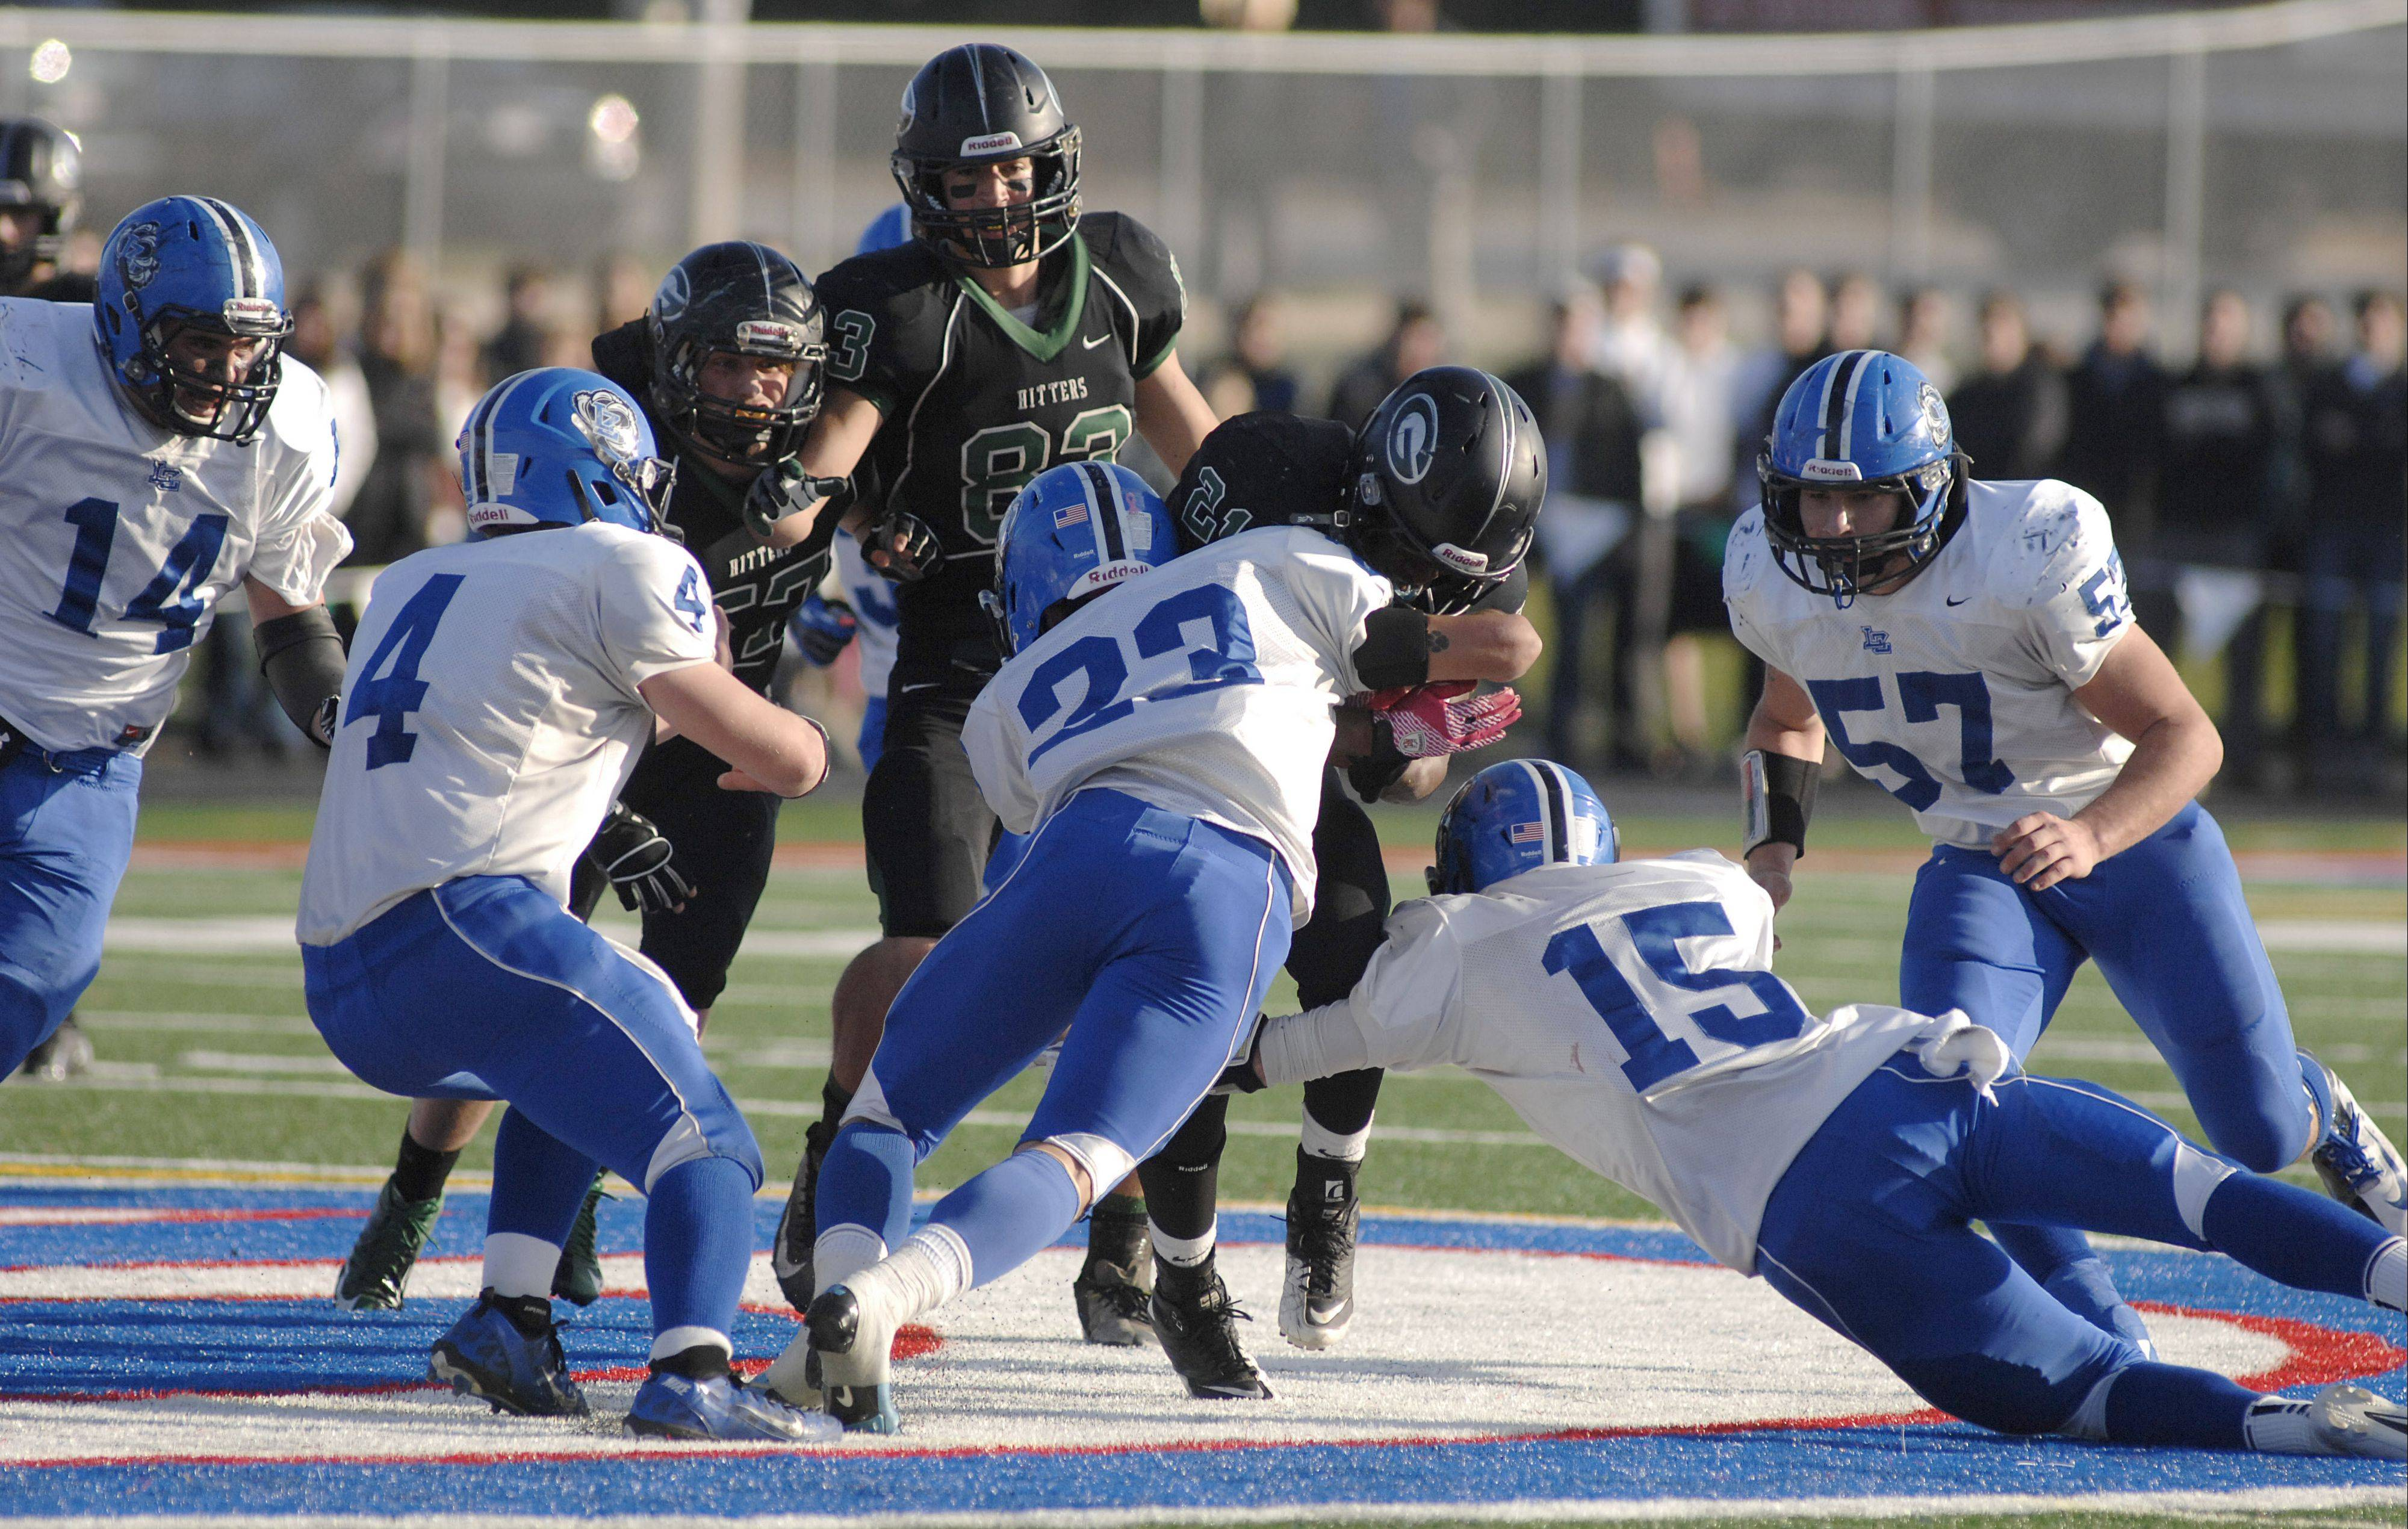 Glenbard West's Deon Dumas is stopped by Lake Zurich's Grant Soucy and Matt Moon in the third quarter on Saturday.